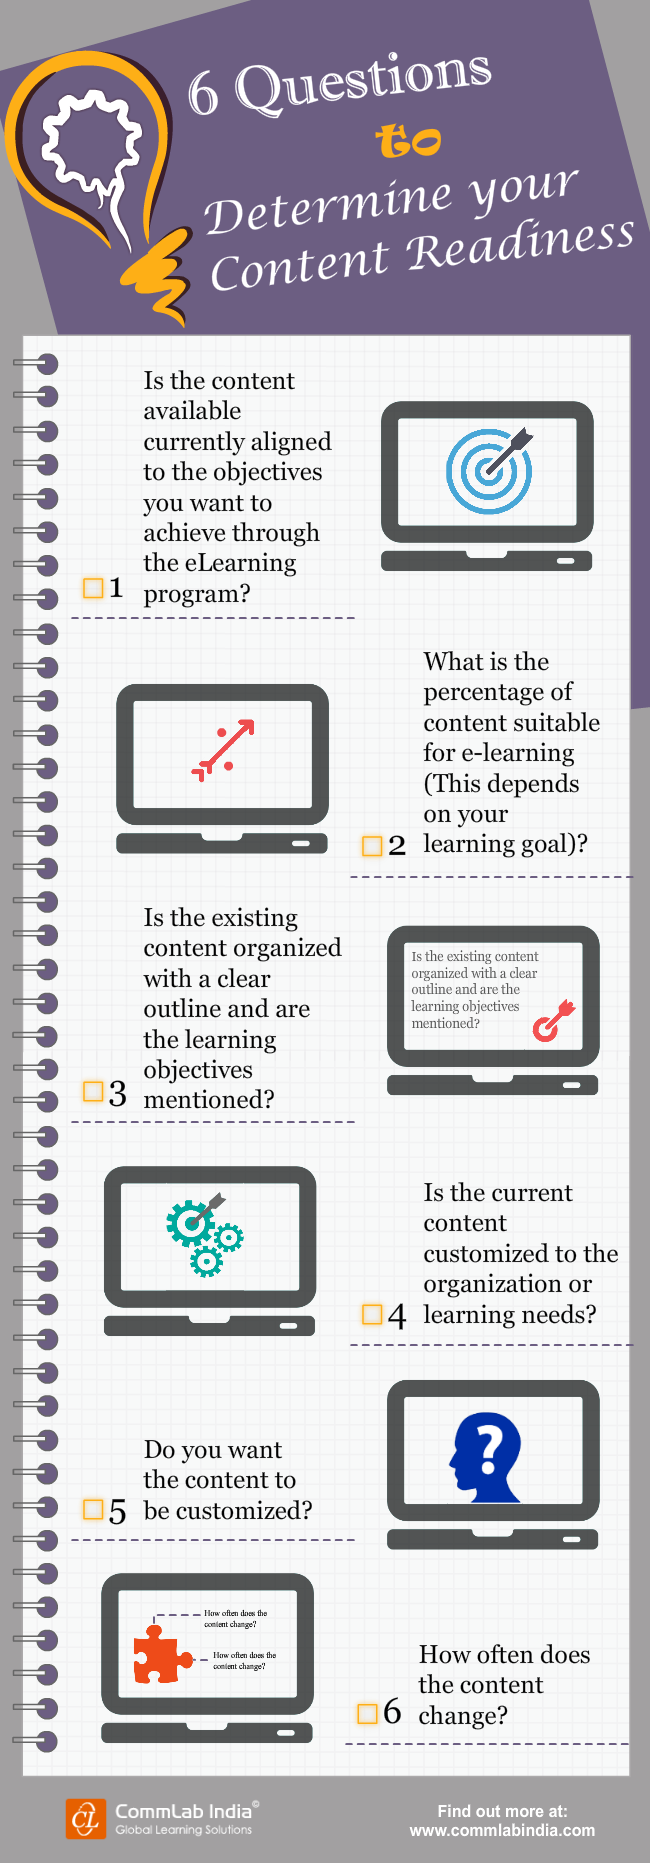 6 Questions to Determine your Content Readiness for E-learning [Infographic]